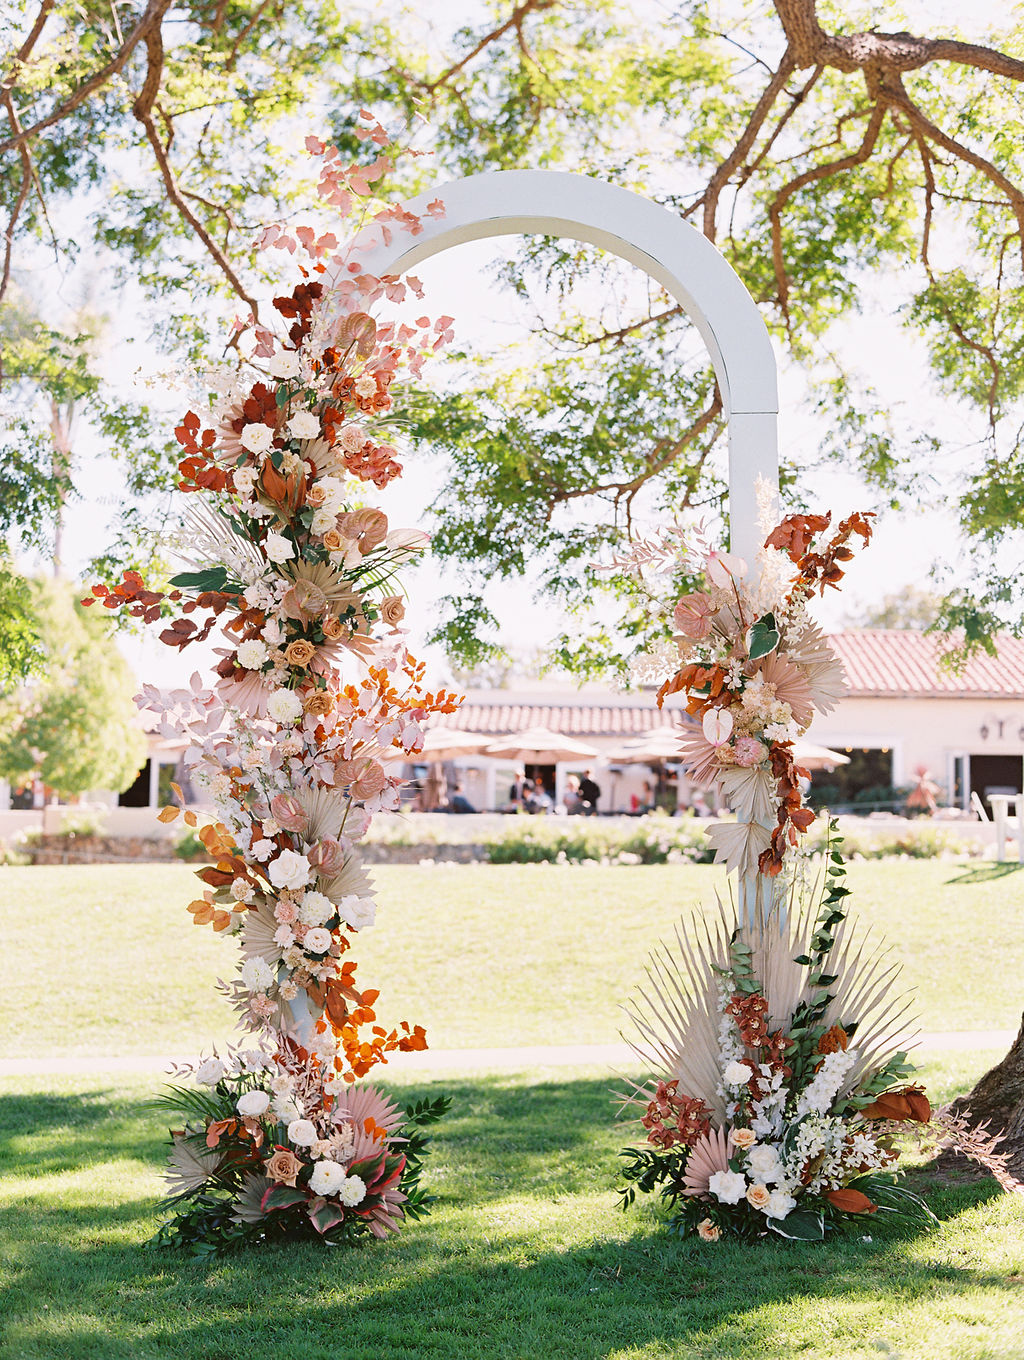 sara trisdan wedding white arch with warm tones floral decorations